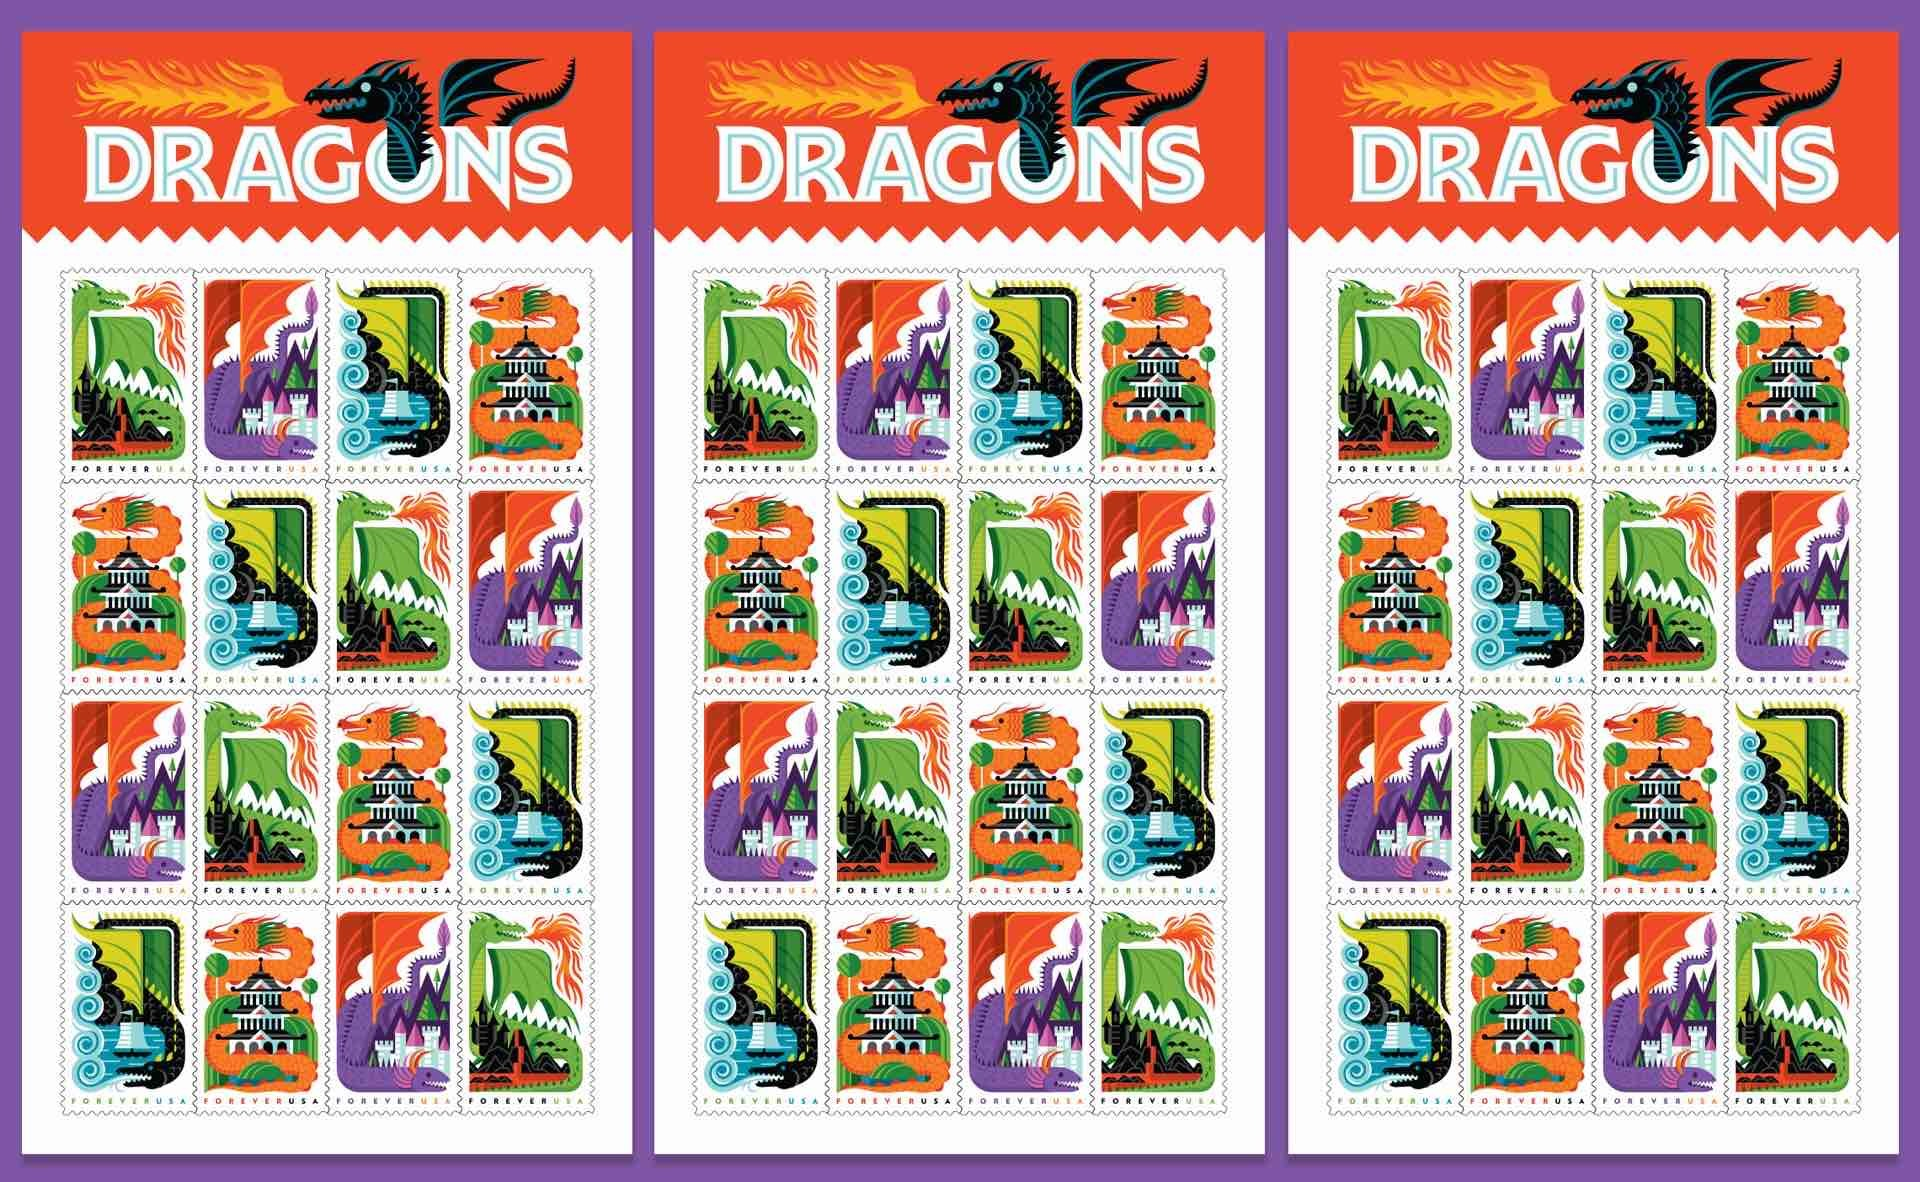 invisible-creature-usps-dragons-forever-usa-postage-stamps-3